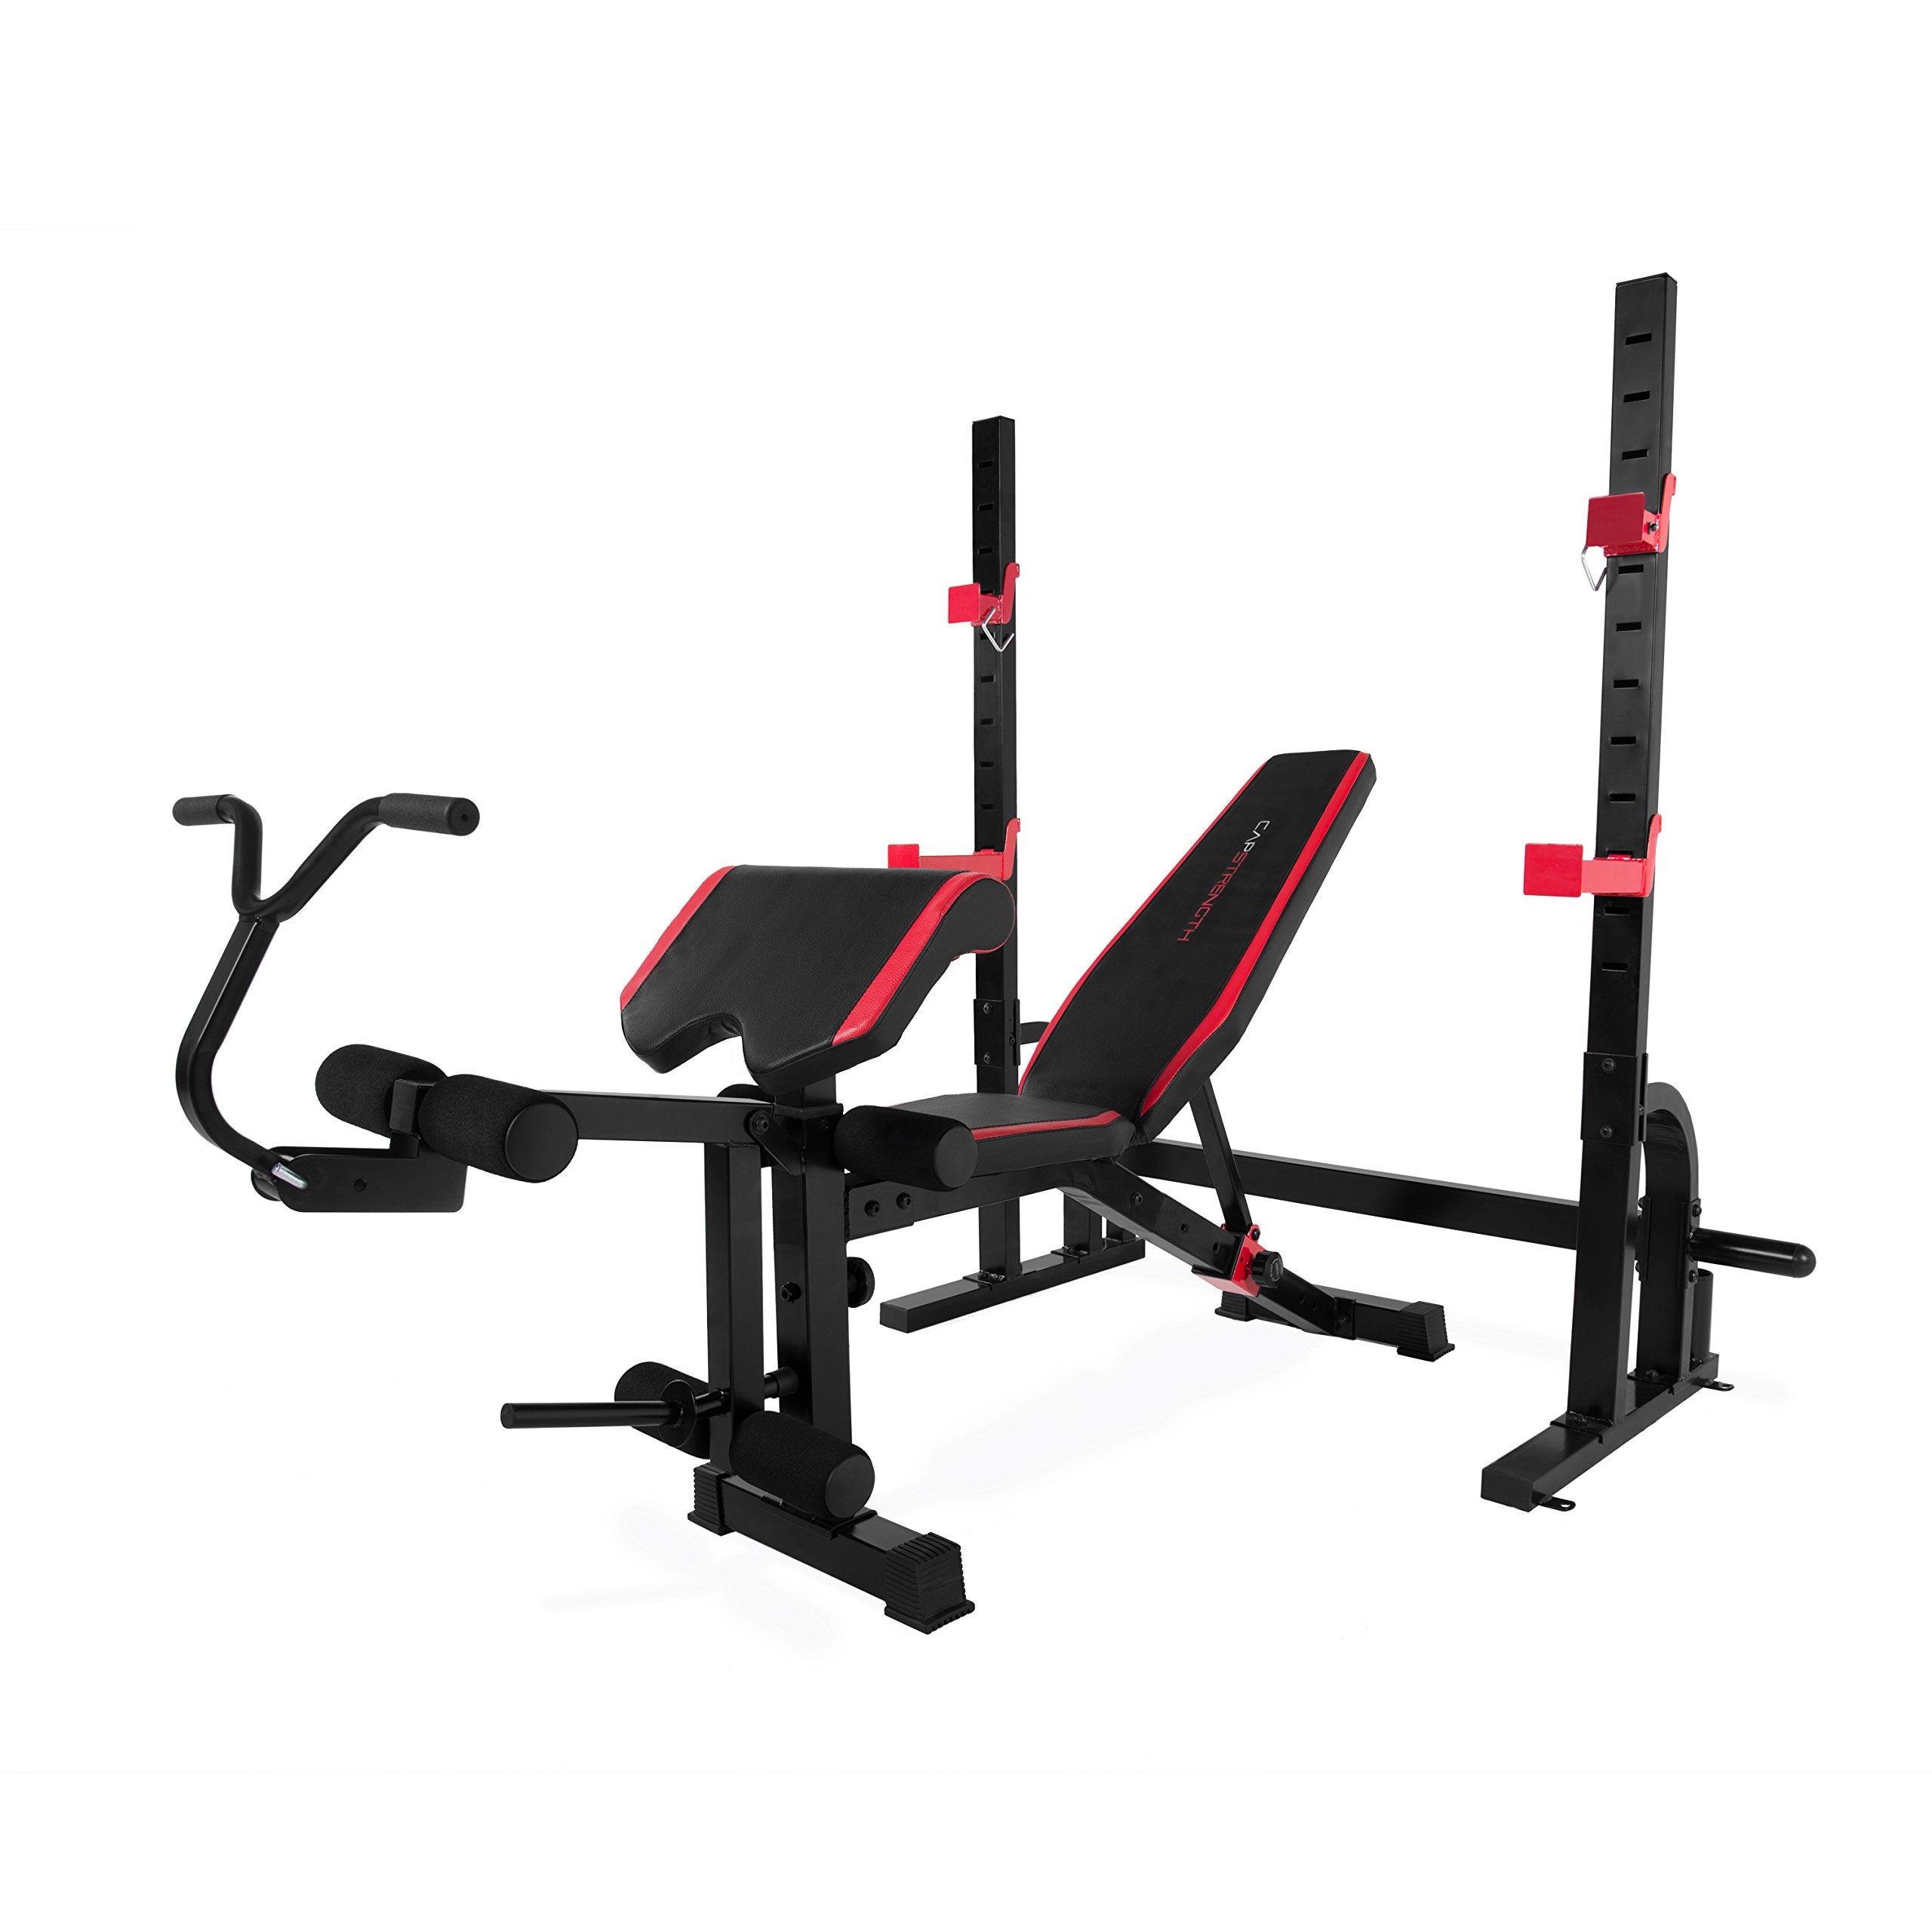 CAP Strength Olympic Bench with Preacher Pad & Leg Developer by CAP Barbell